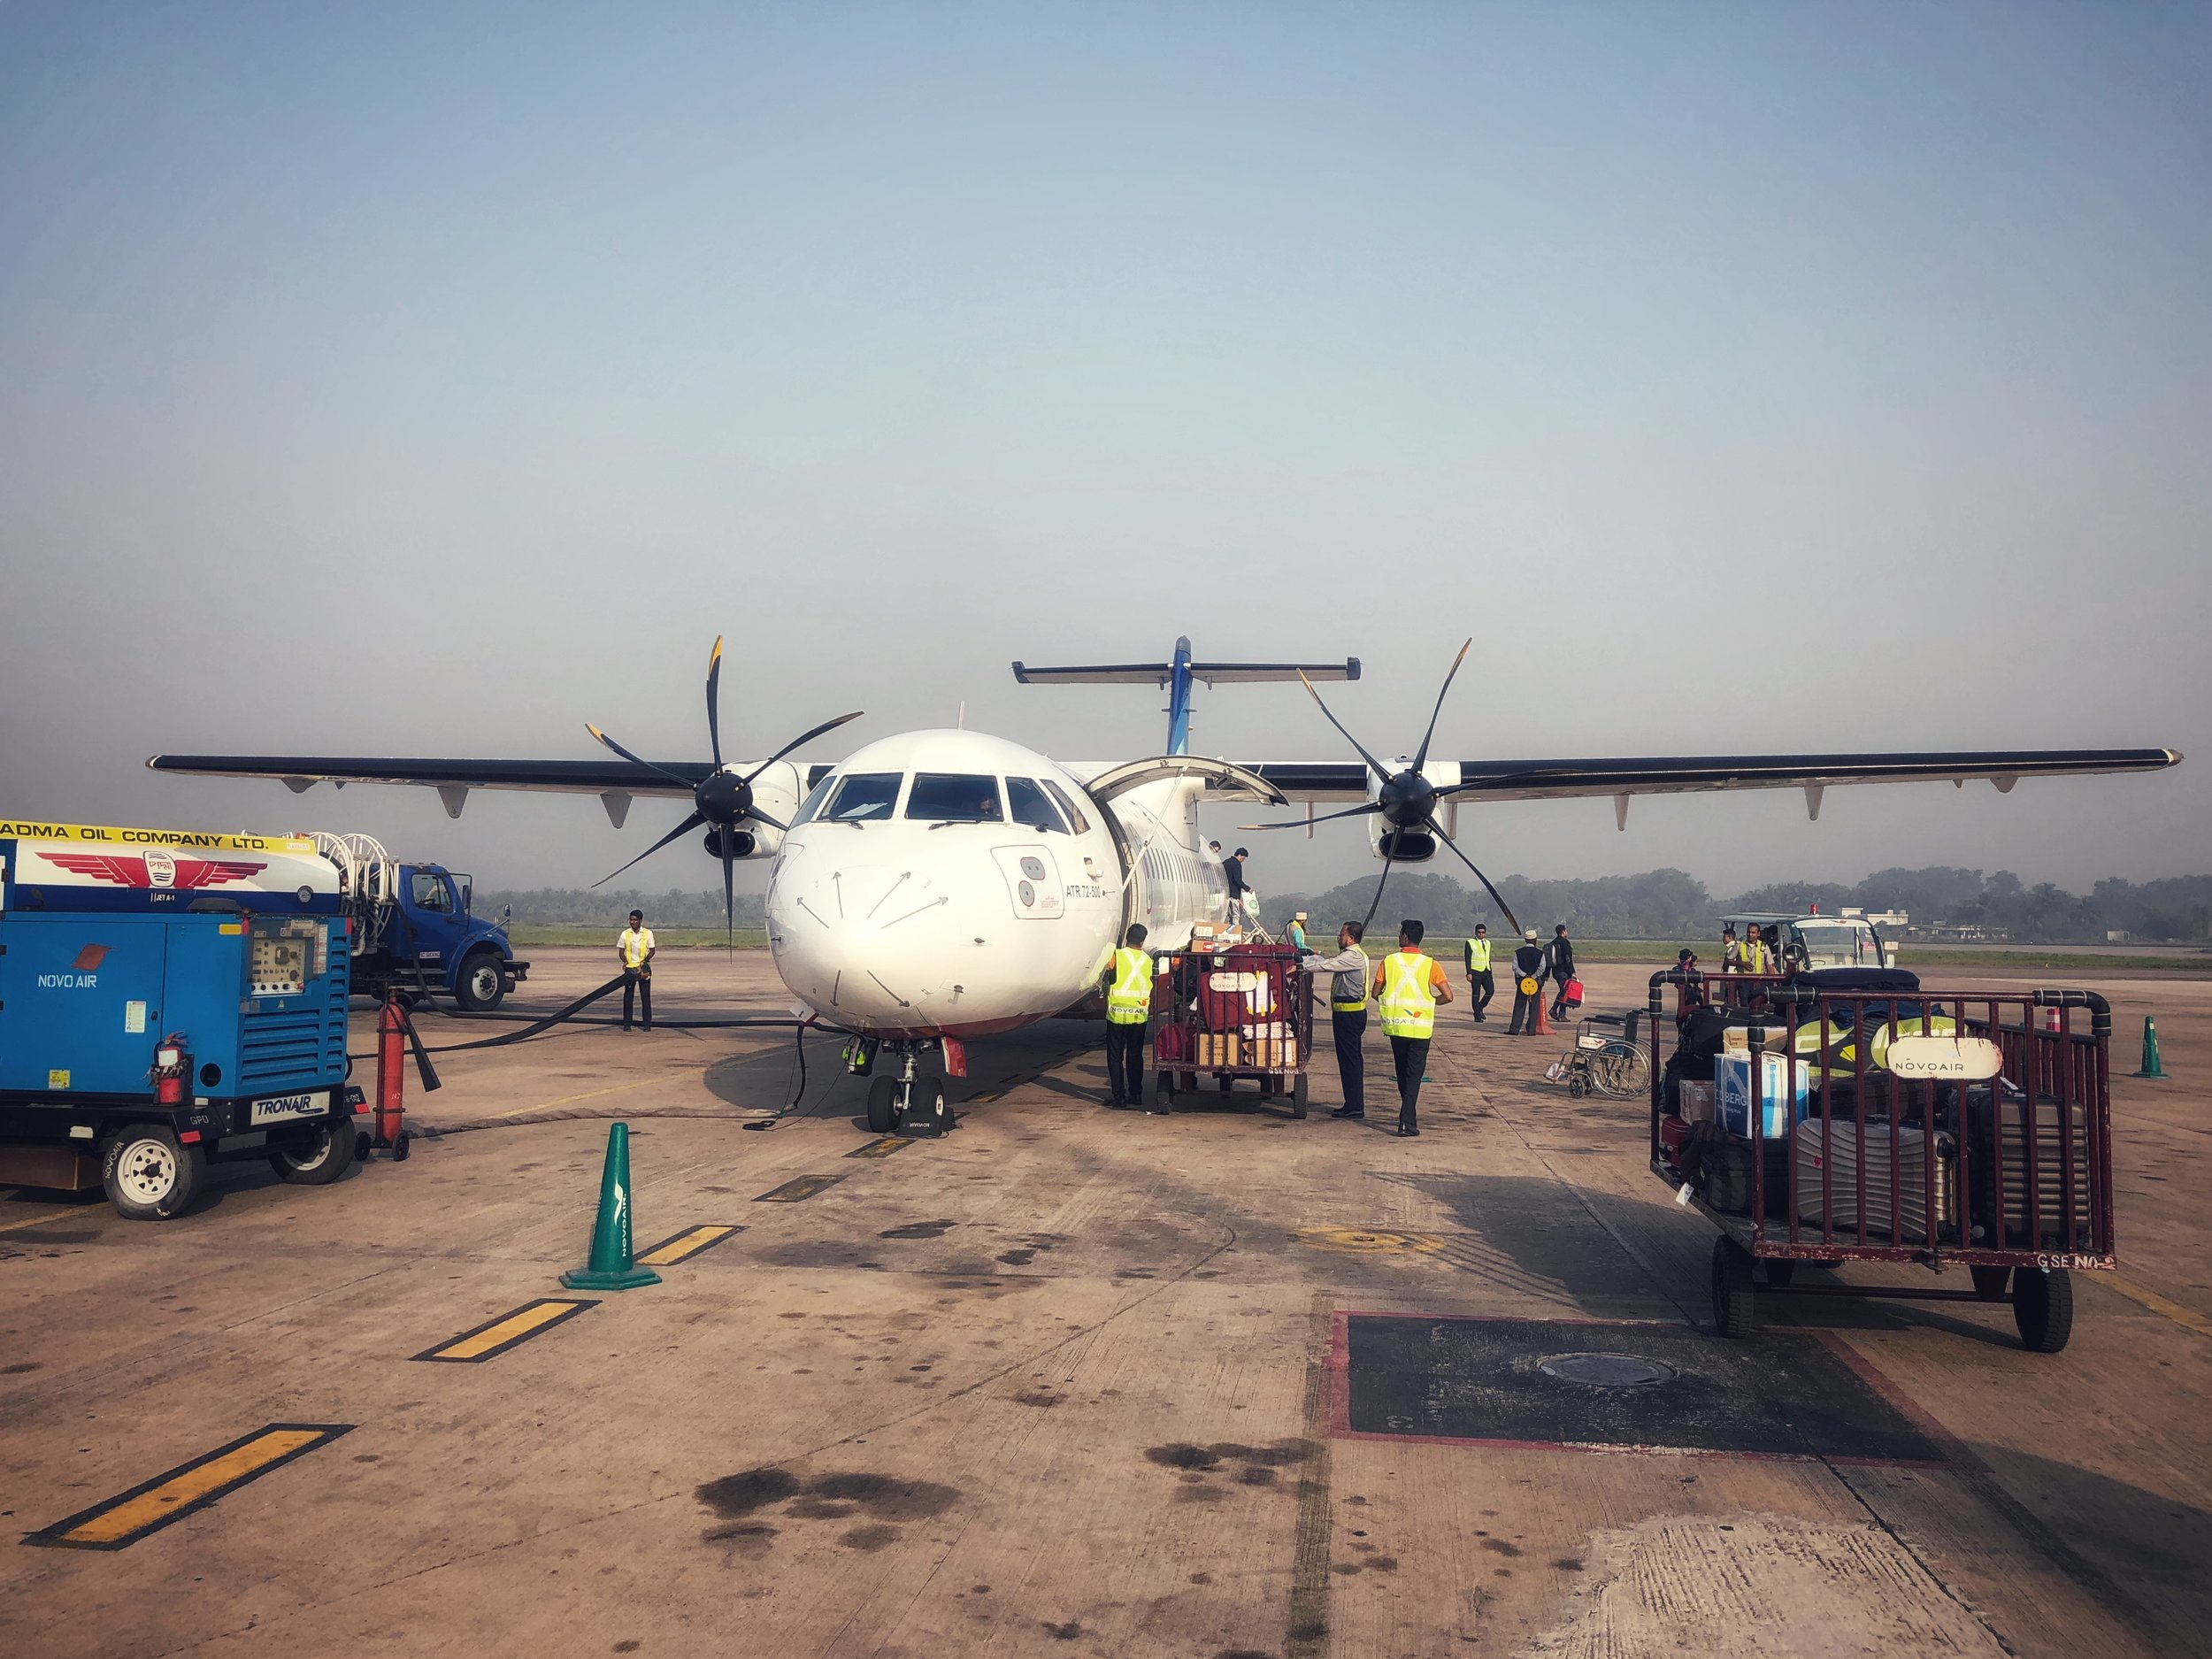 Having travelled on everything from fishing boat and rickshaw to CNG and bus it was now time to take my first plane ride